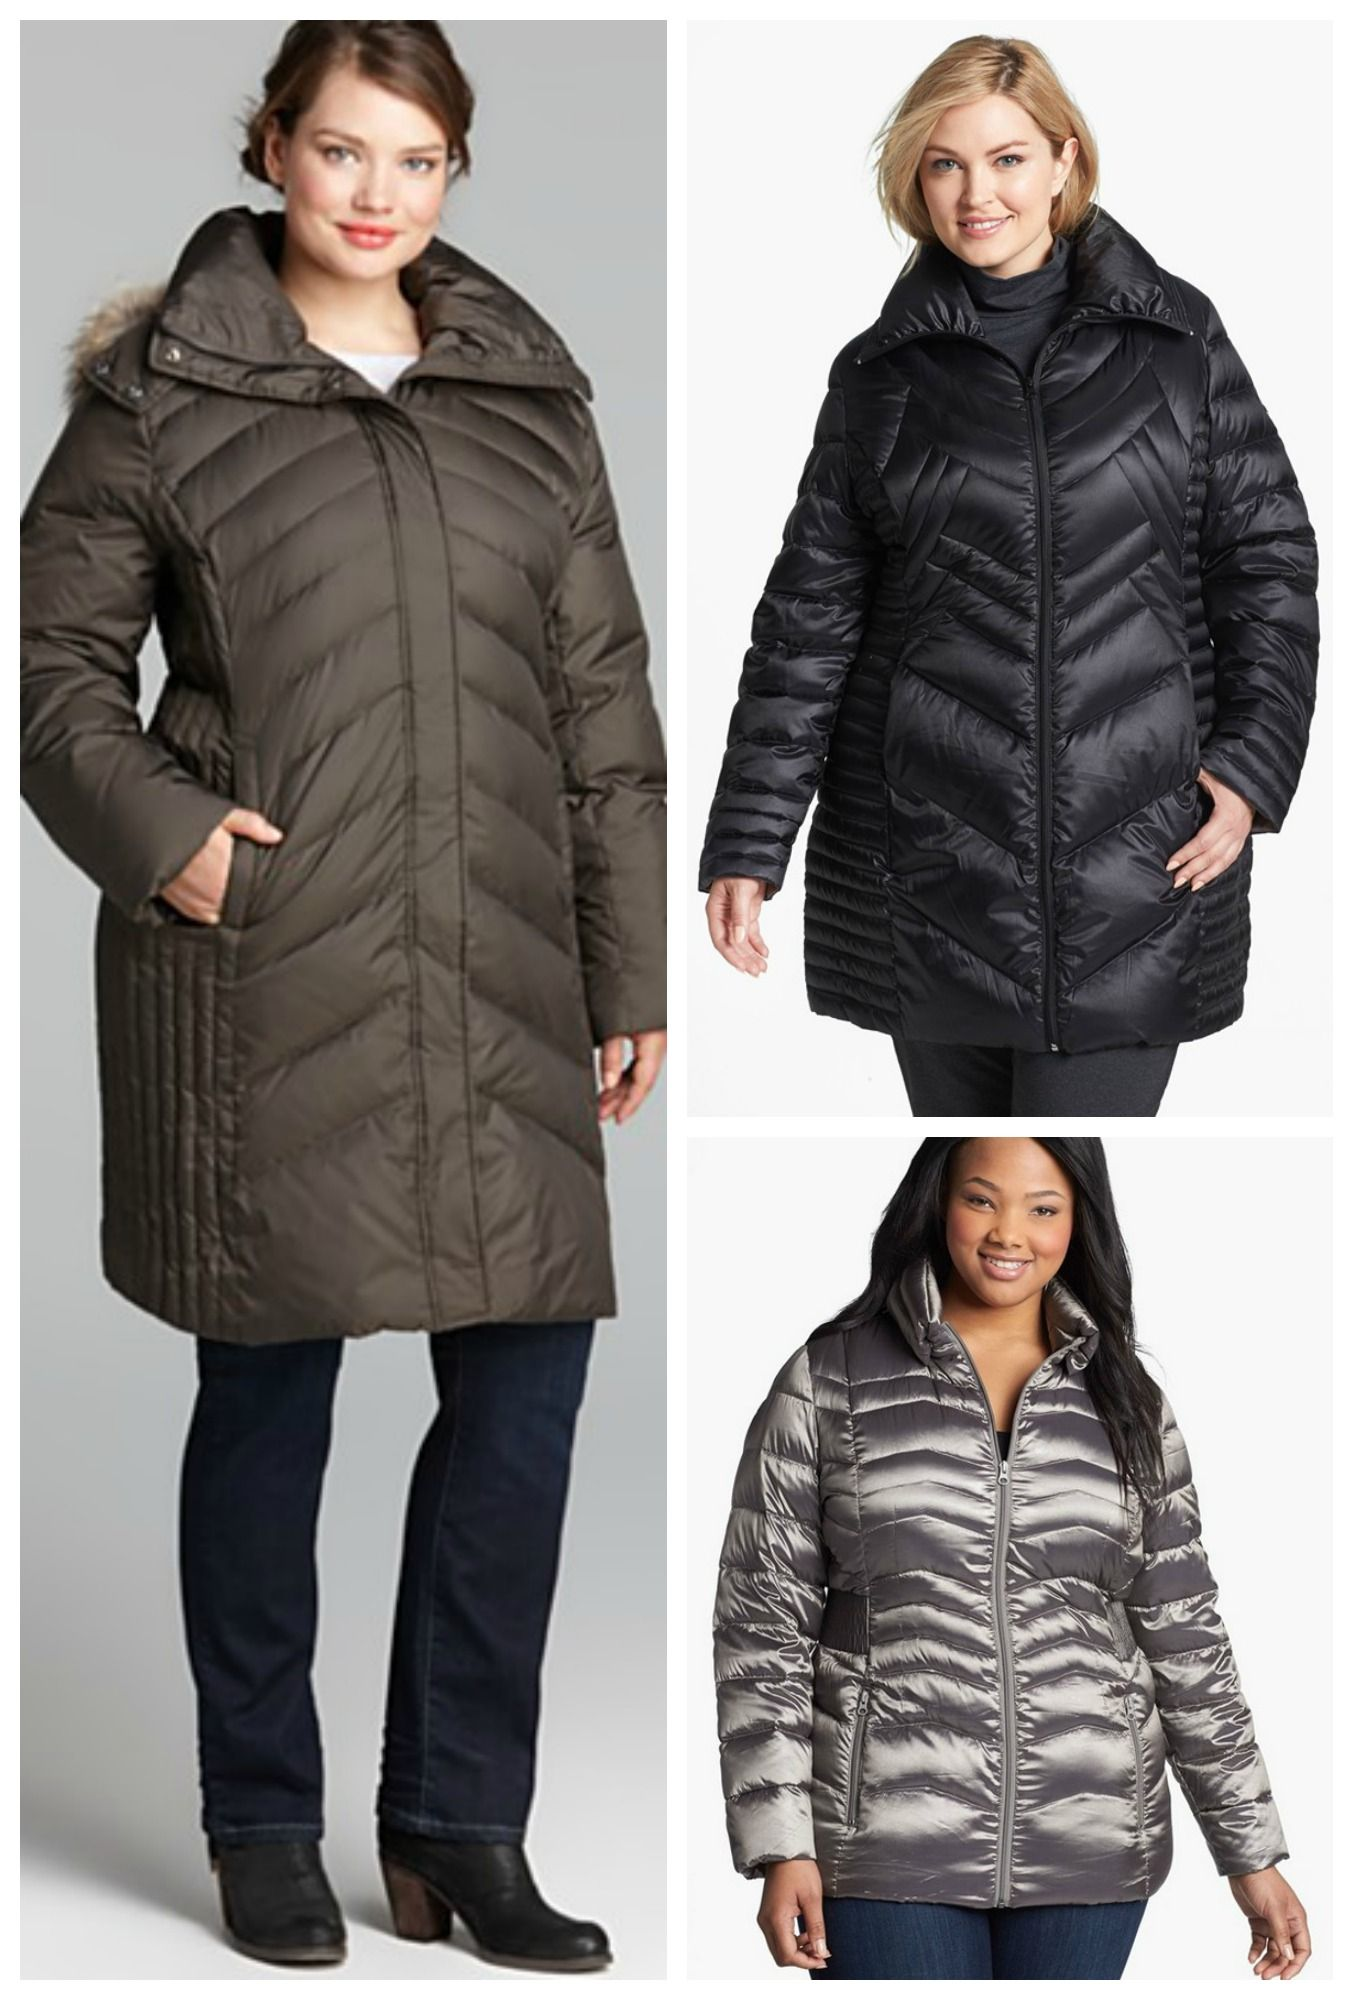 37f263ac5b951 burlington coat factory womens coats | Coats in 2019 | Plus size ...